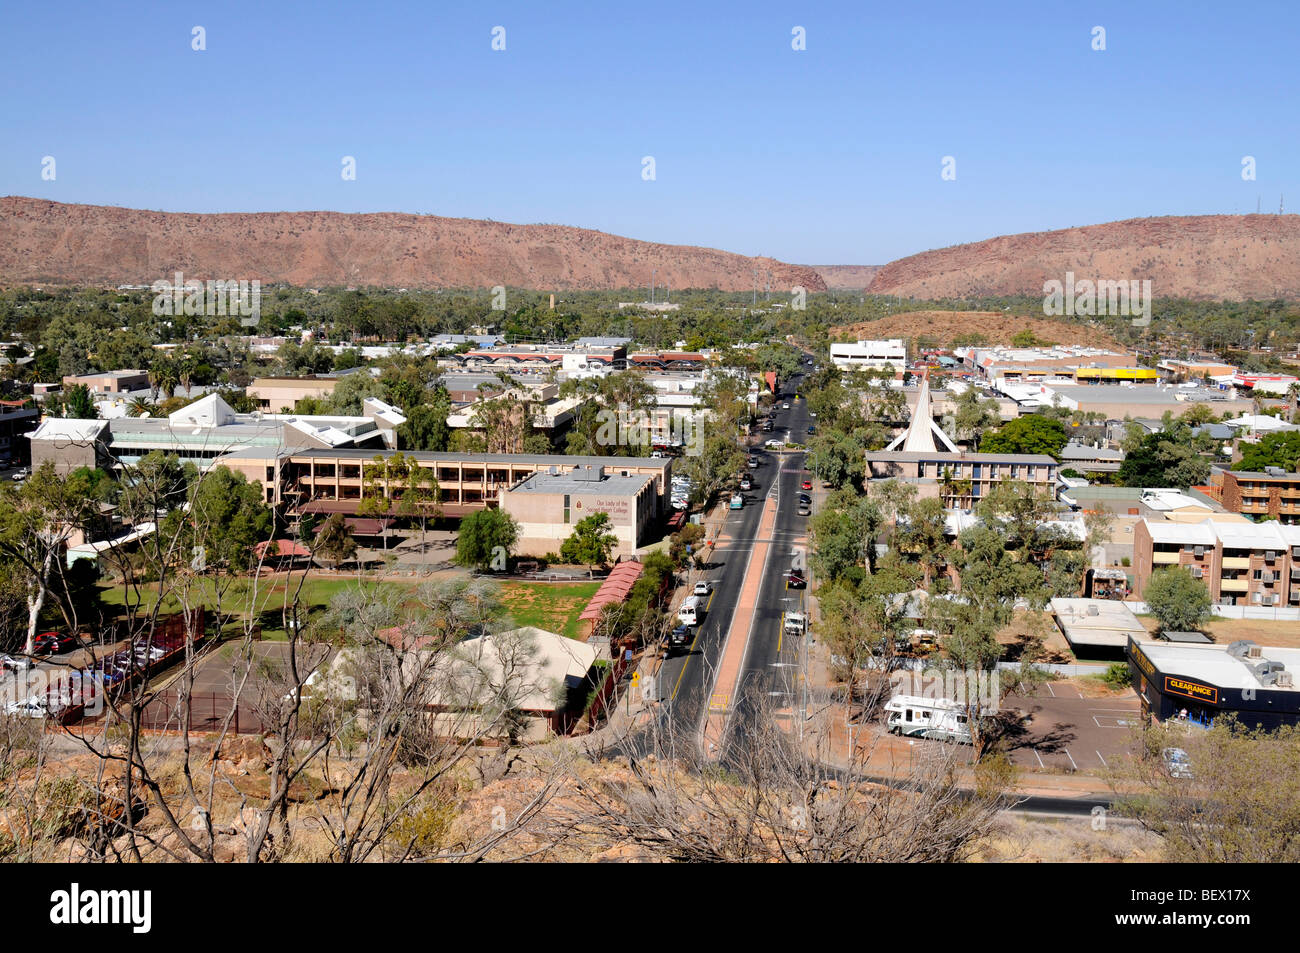 Veiw from  ANZAC hill in Alice Springs, Australia - Stock Image